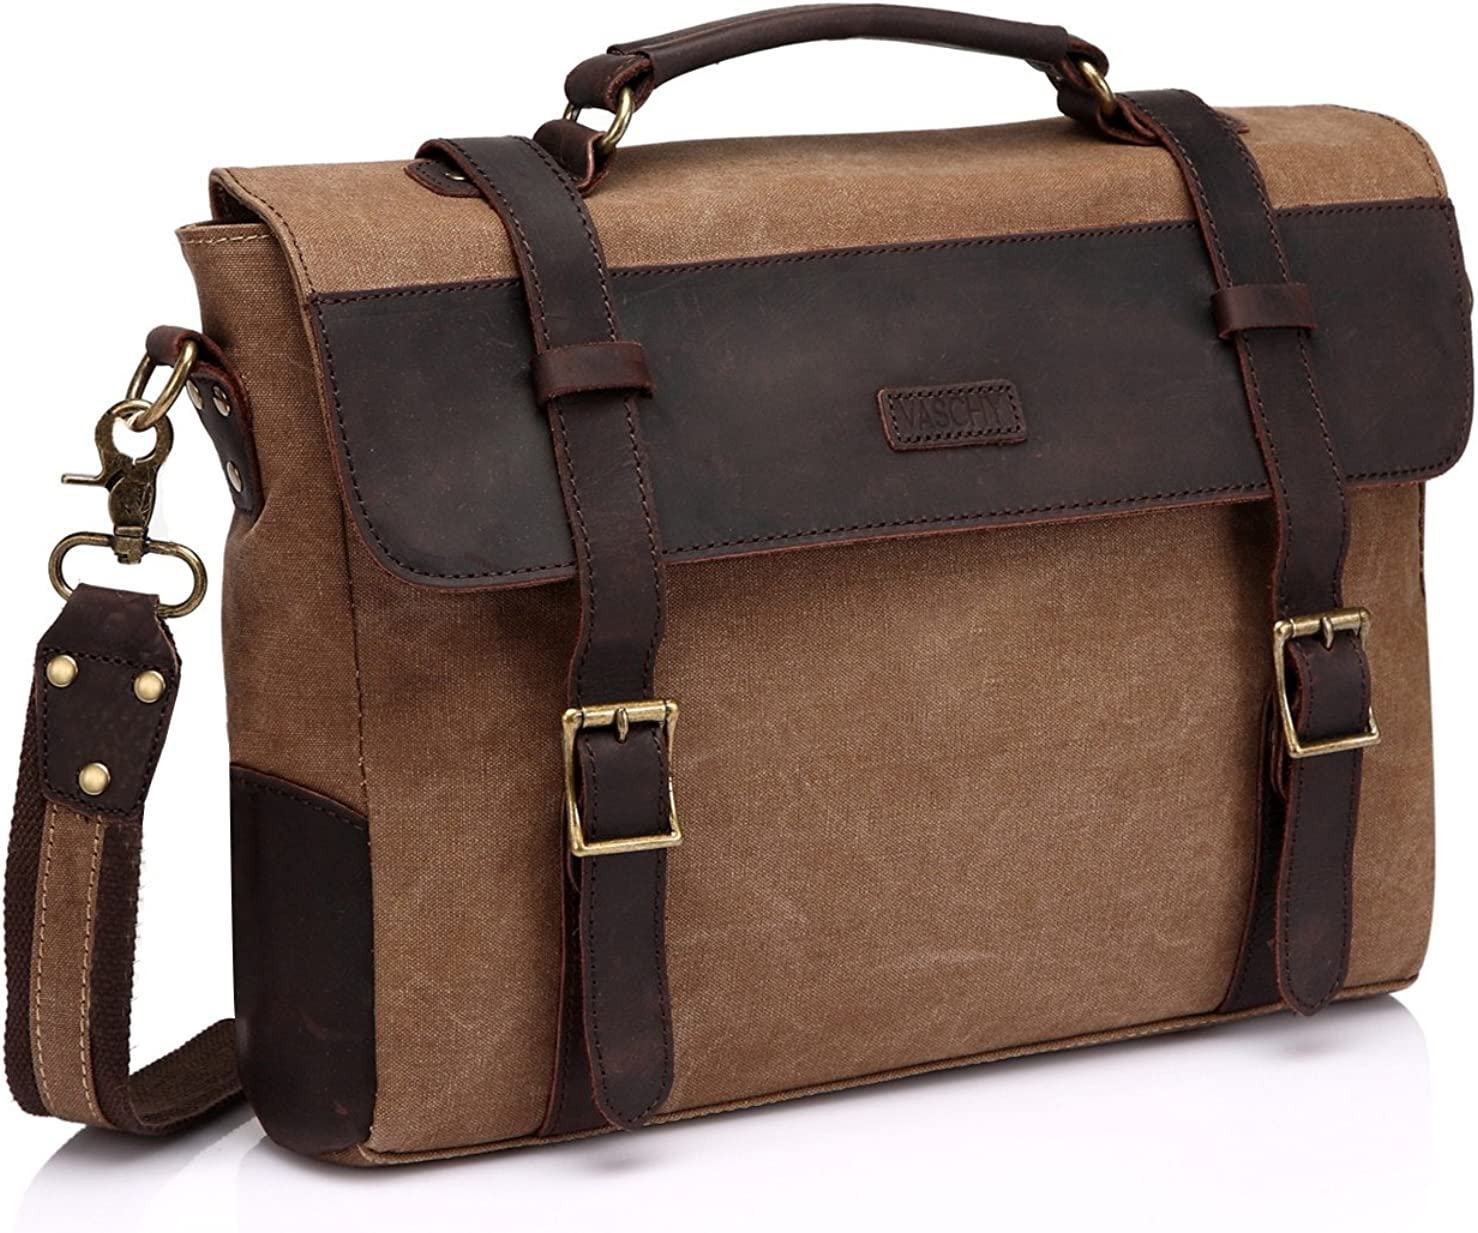 Messenger Bag for Men,Vintage Canvas Leather Canvas Laptop Satchel Shoulder Bag Business Briefcase